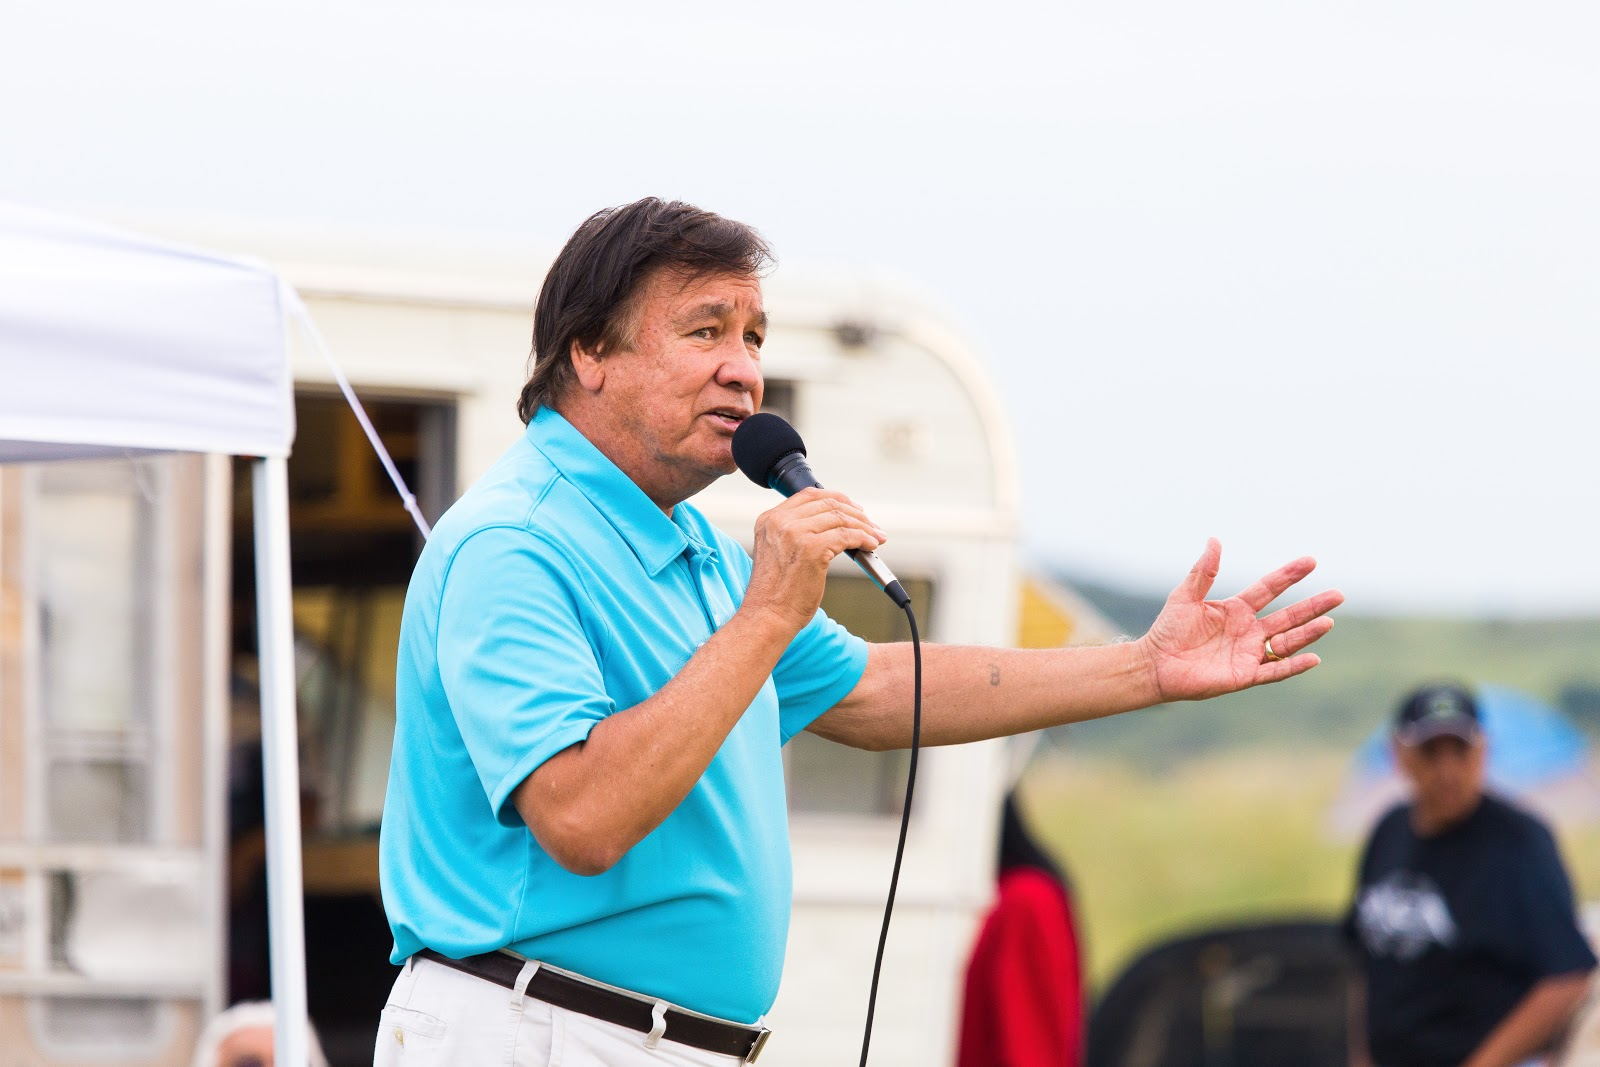 Olympic gold medalist Billy Mills addresses camp on how the past ties into the challenges today. (Photo: Alex Hamer)